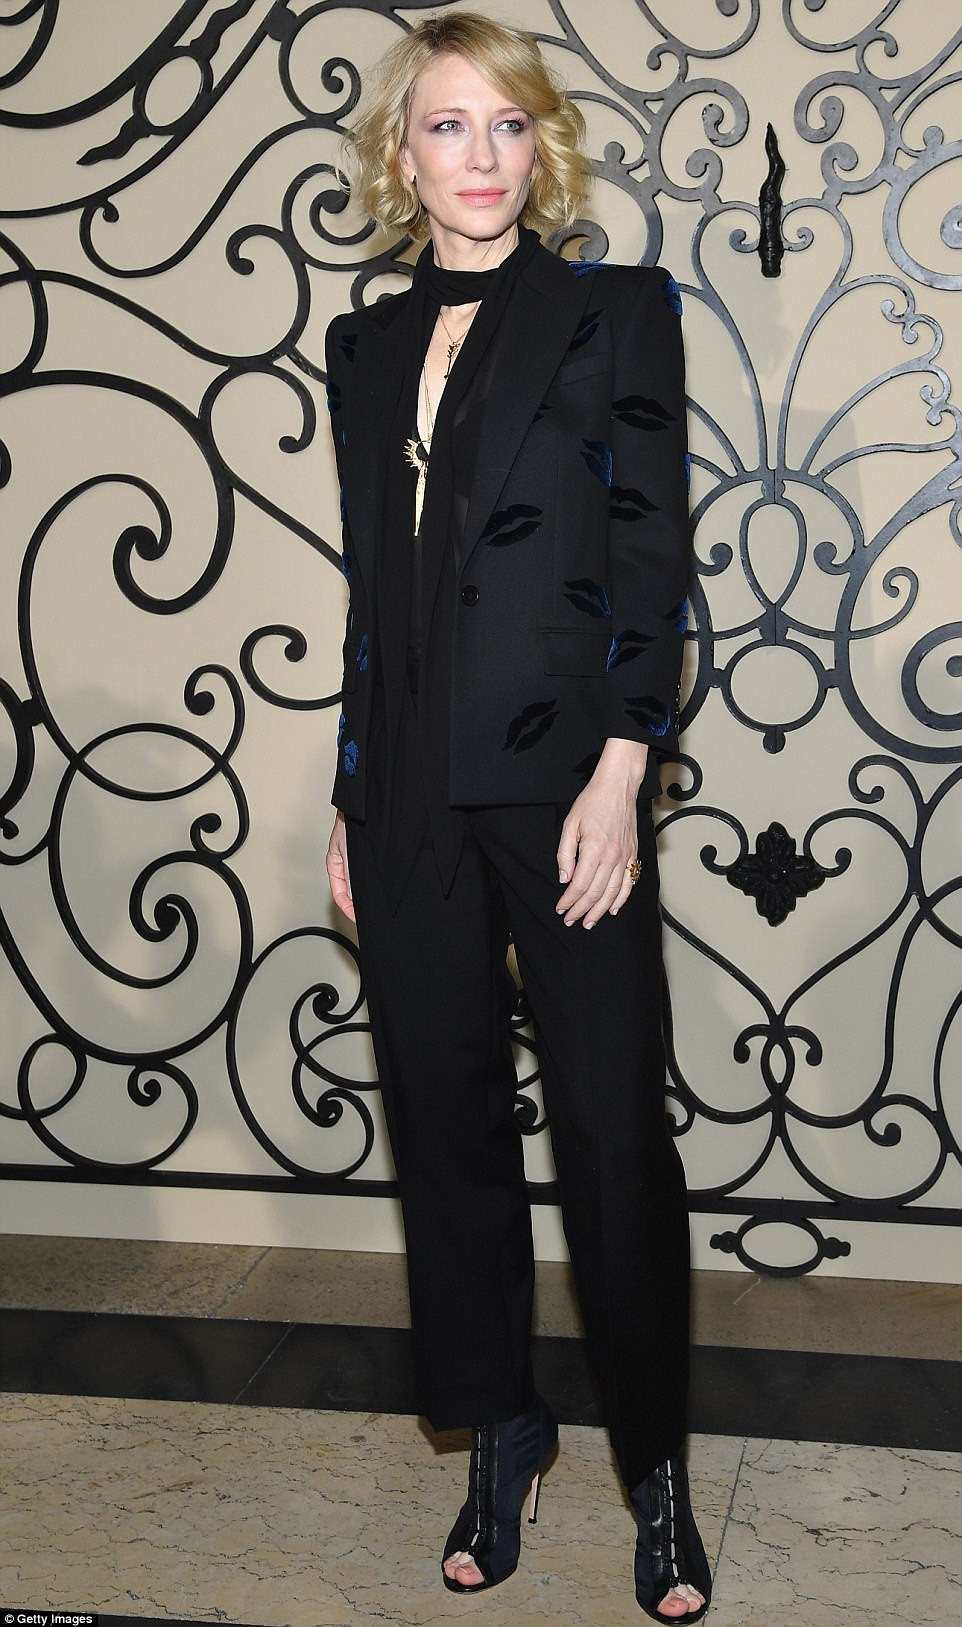 Getting lippy:Cate Blanchett later added to the fray in a black jumpsuit and blazer - adorned with the playful embroidered images of lips all over, in contrasting blue velvet